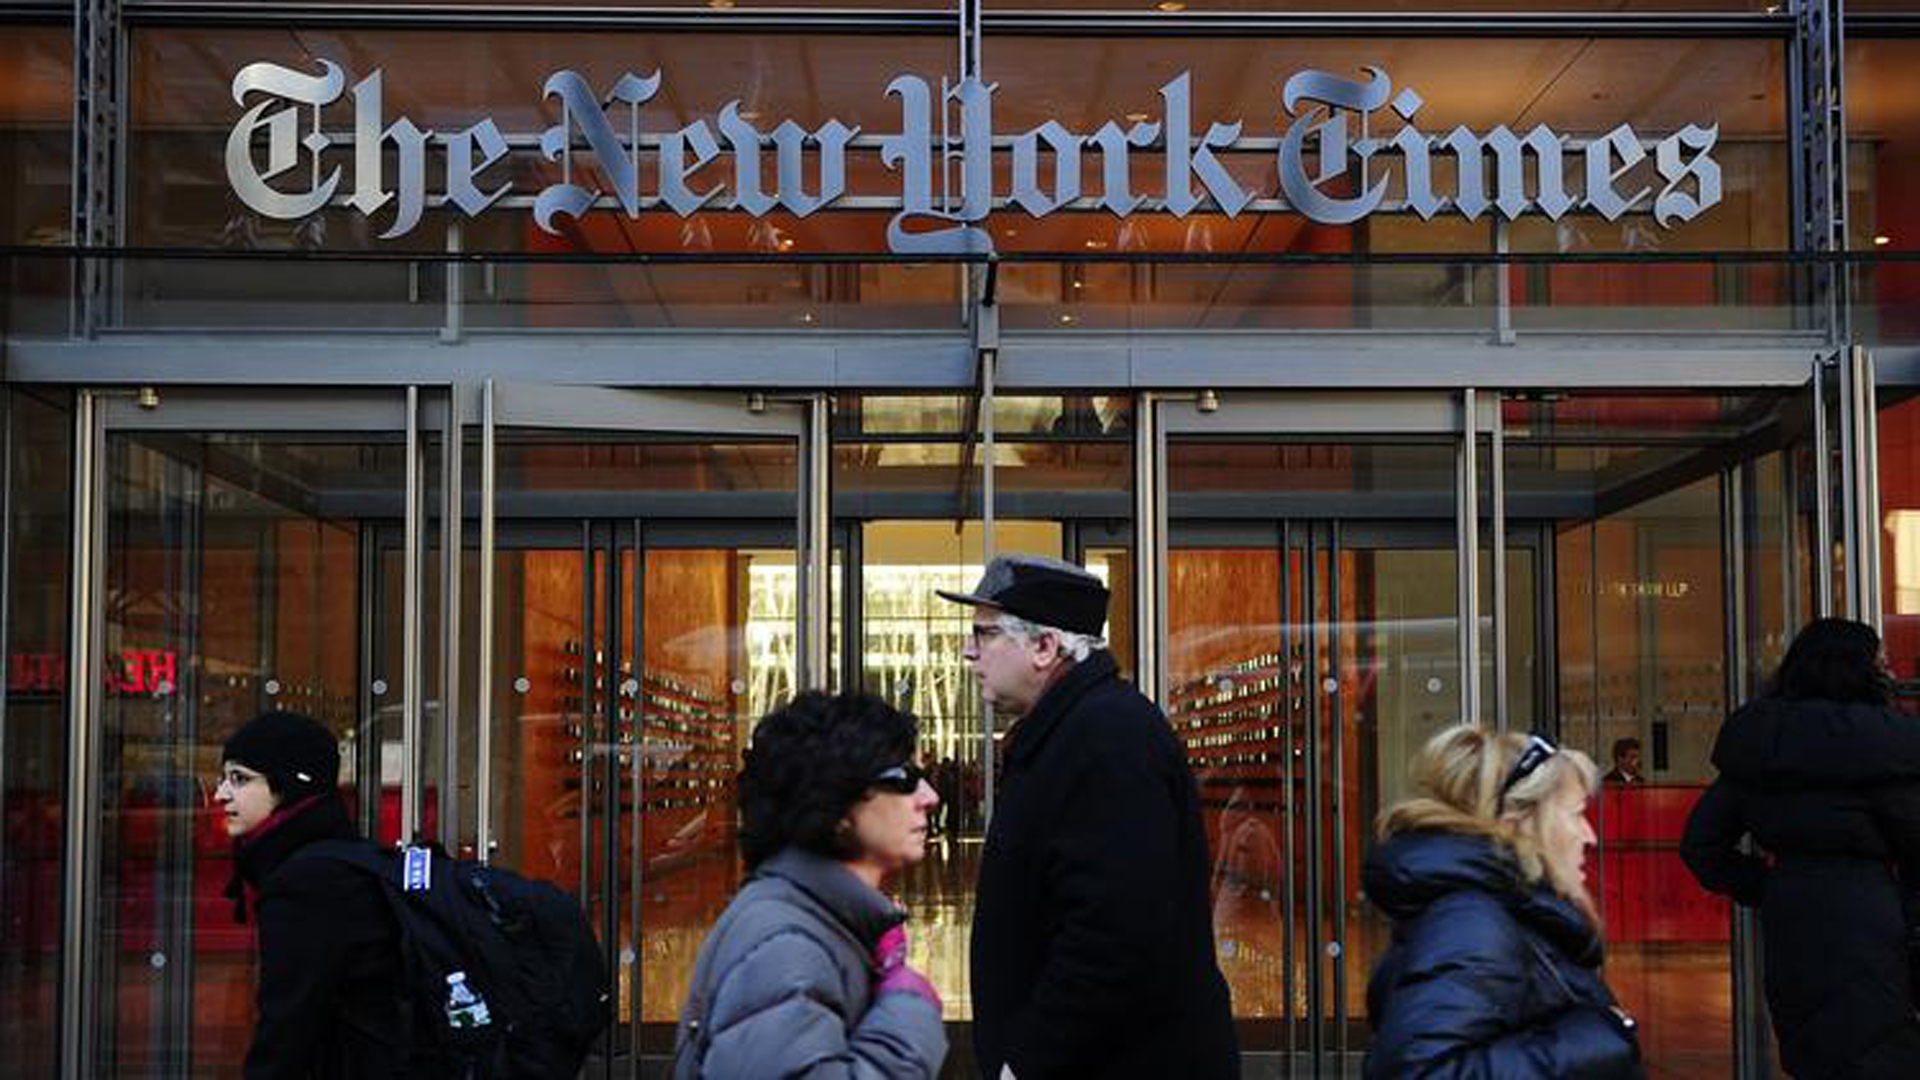 People walk by an entrance to the New York Times on March 8, 2011. (Los Angeles Times)